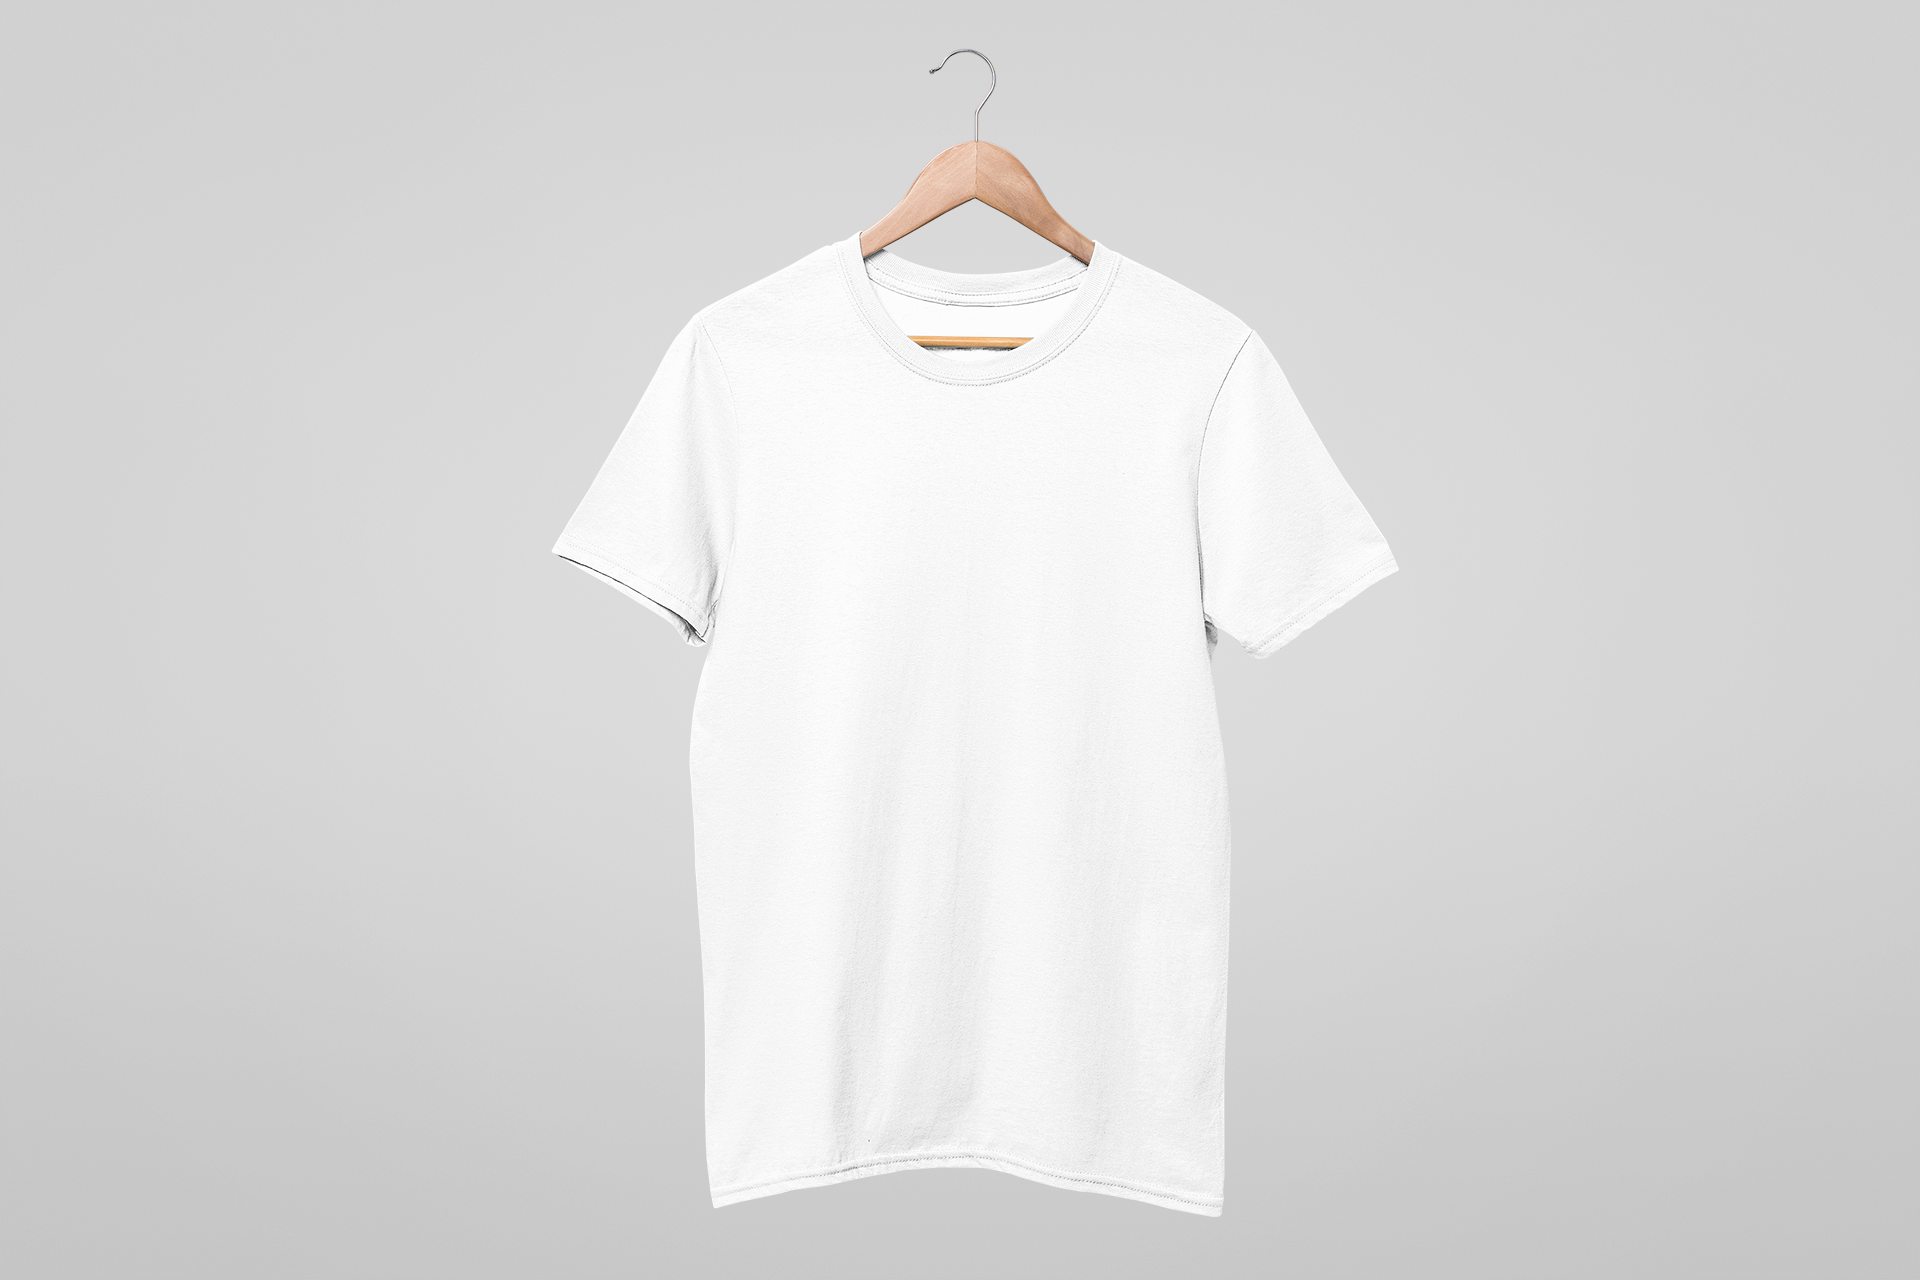 mockup-of-a-t-shirt-hanging-against-a-solid-background-26878